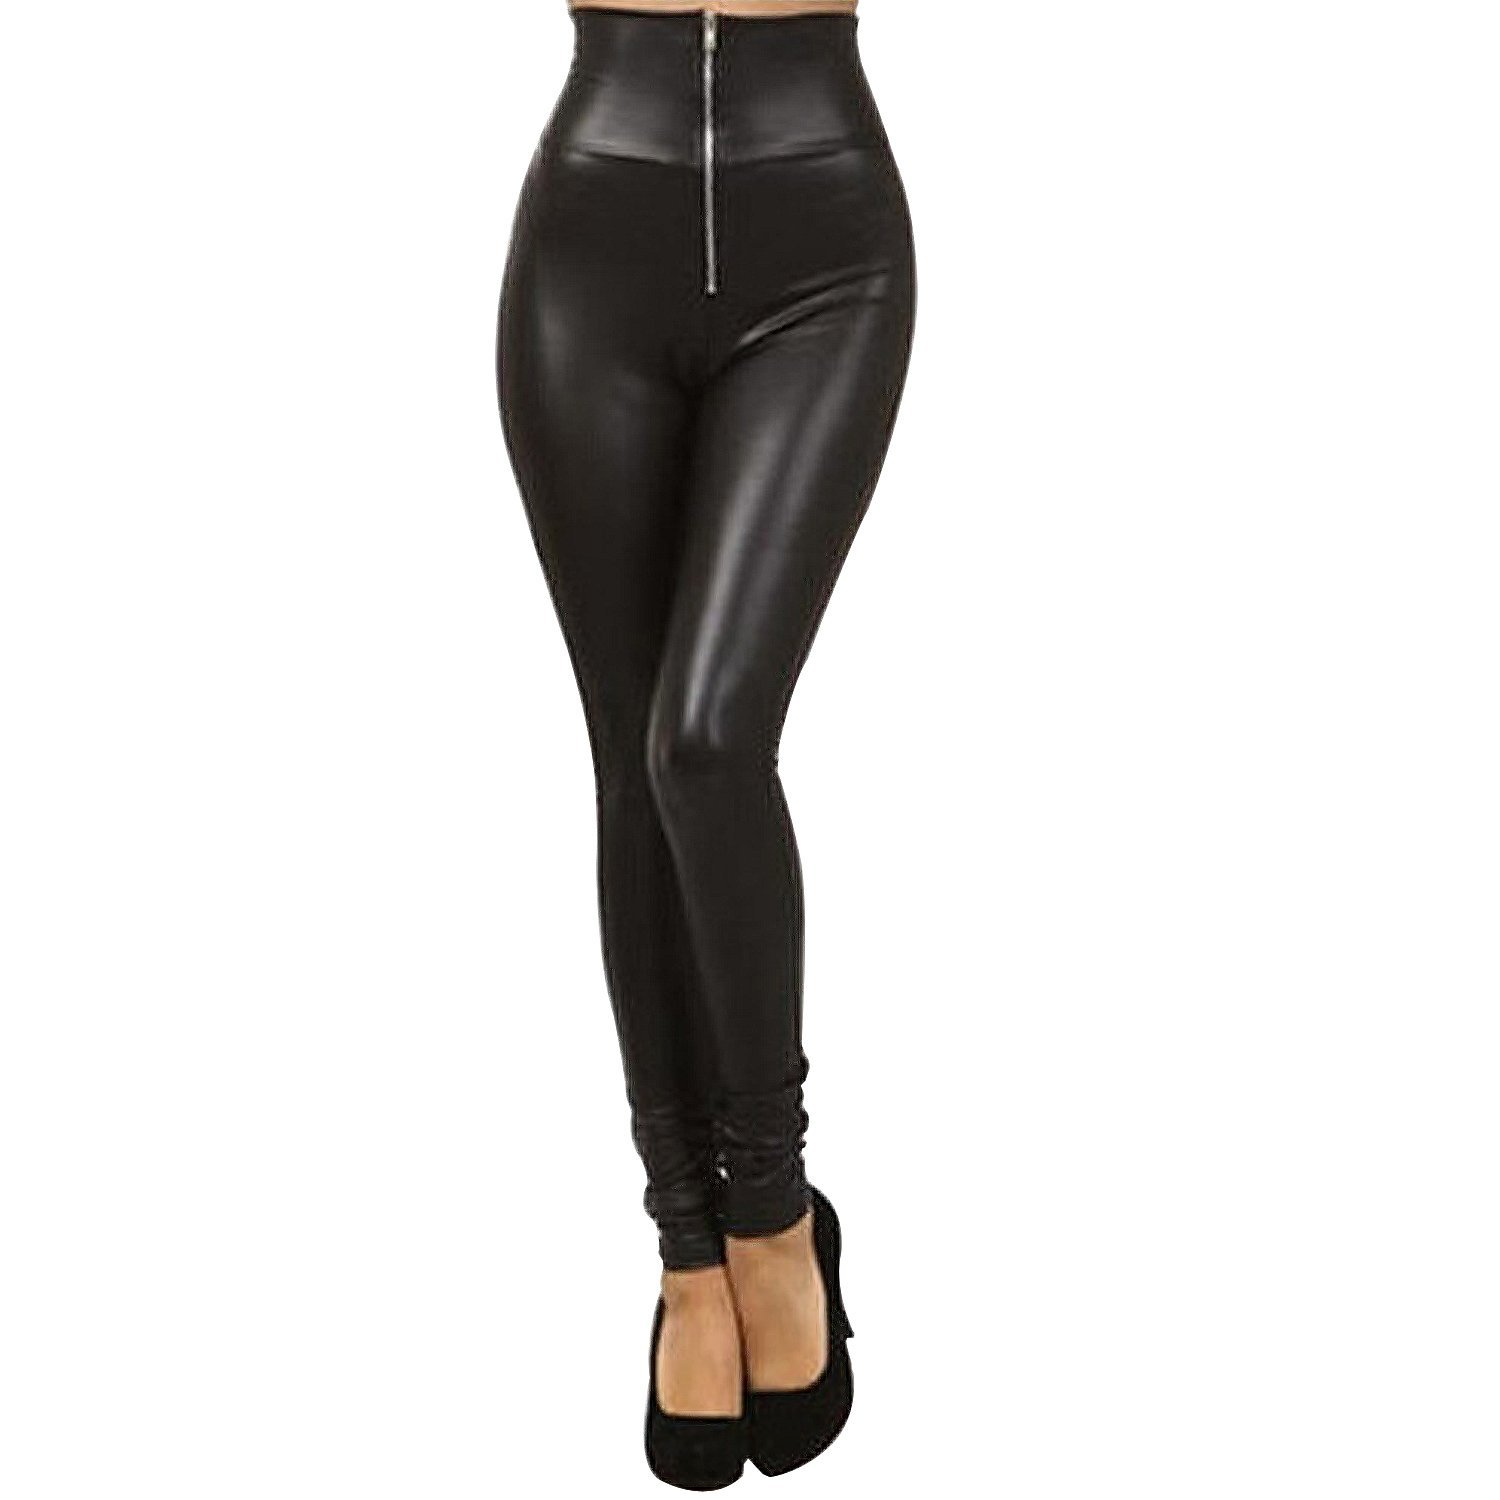 30ec5fccbd718e Get Quotations · Tulucky Sexy Womens Front Zipper Pants Faux Leather High  Waisted Leggings